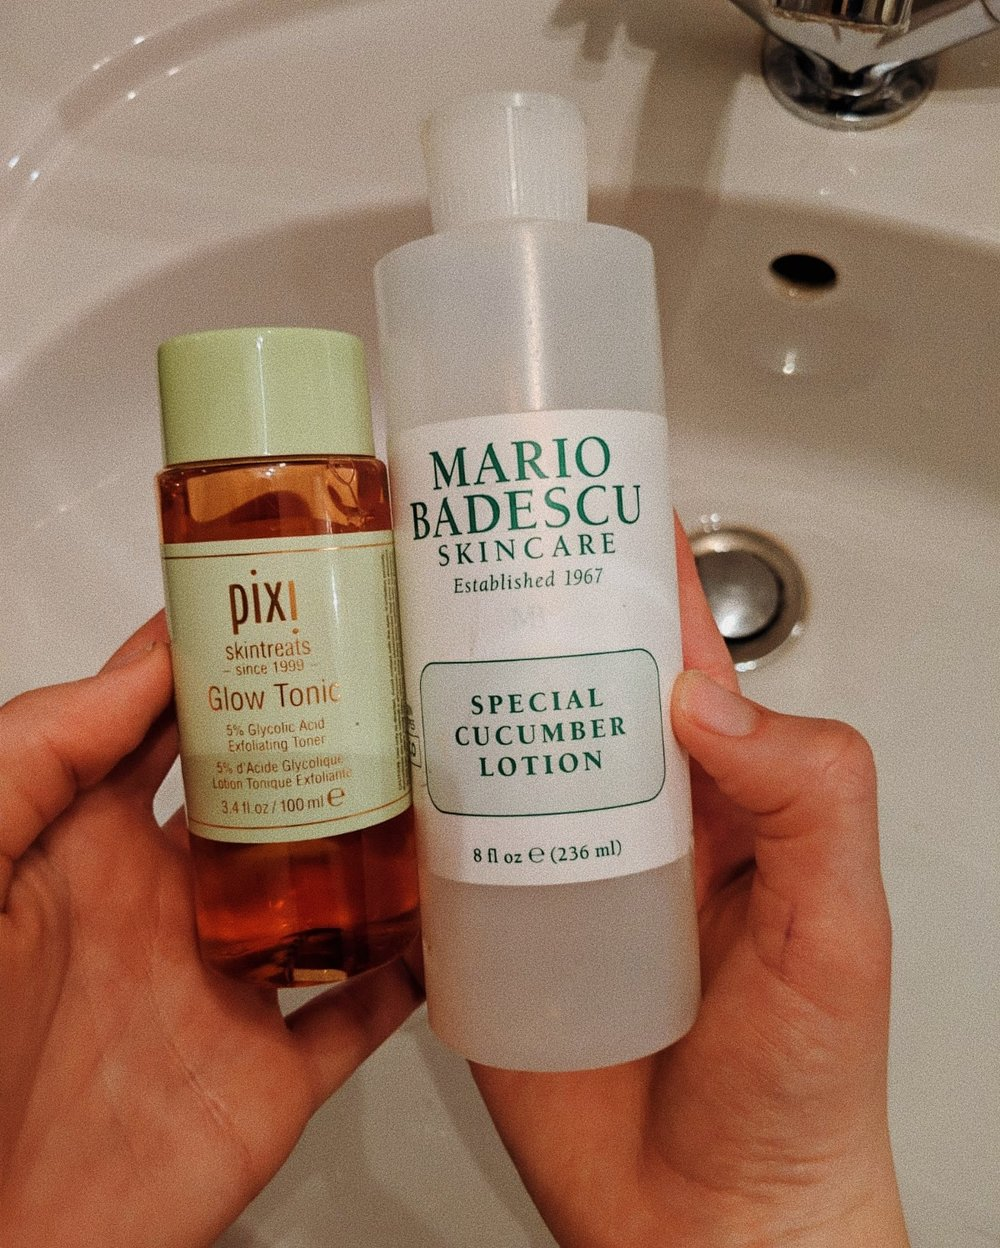 A Relaxing Evening Routine | Skincare and Ways To Wind Down4.JPG